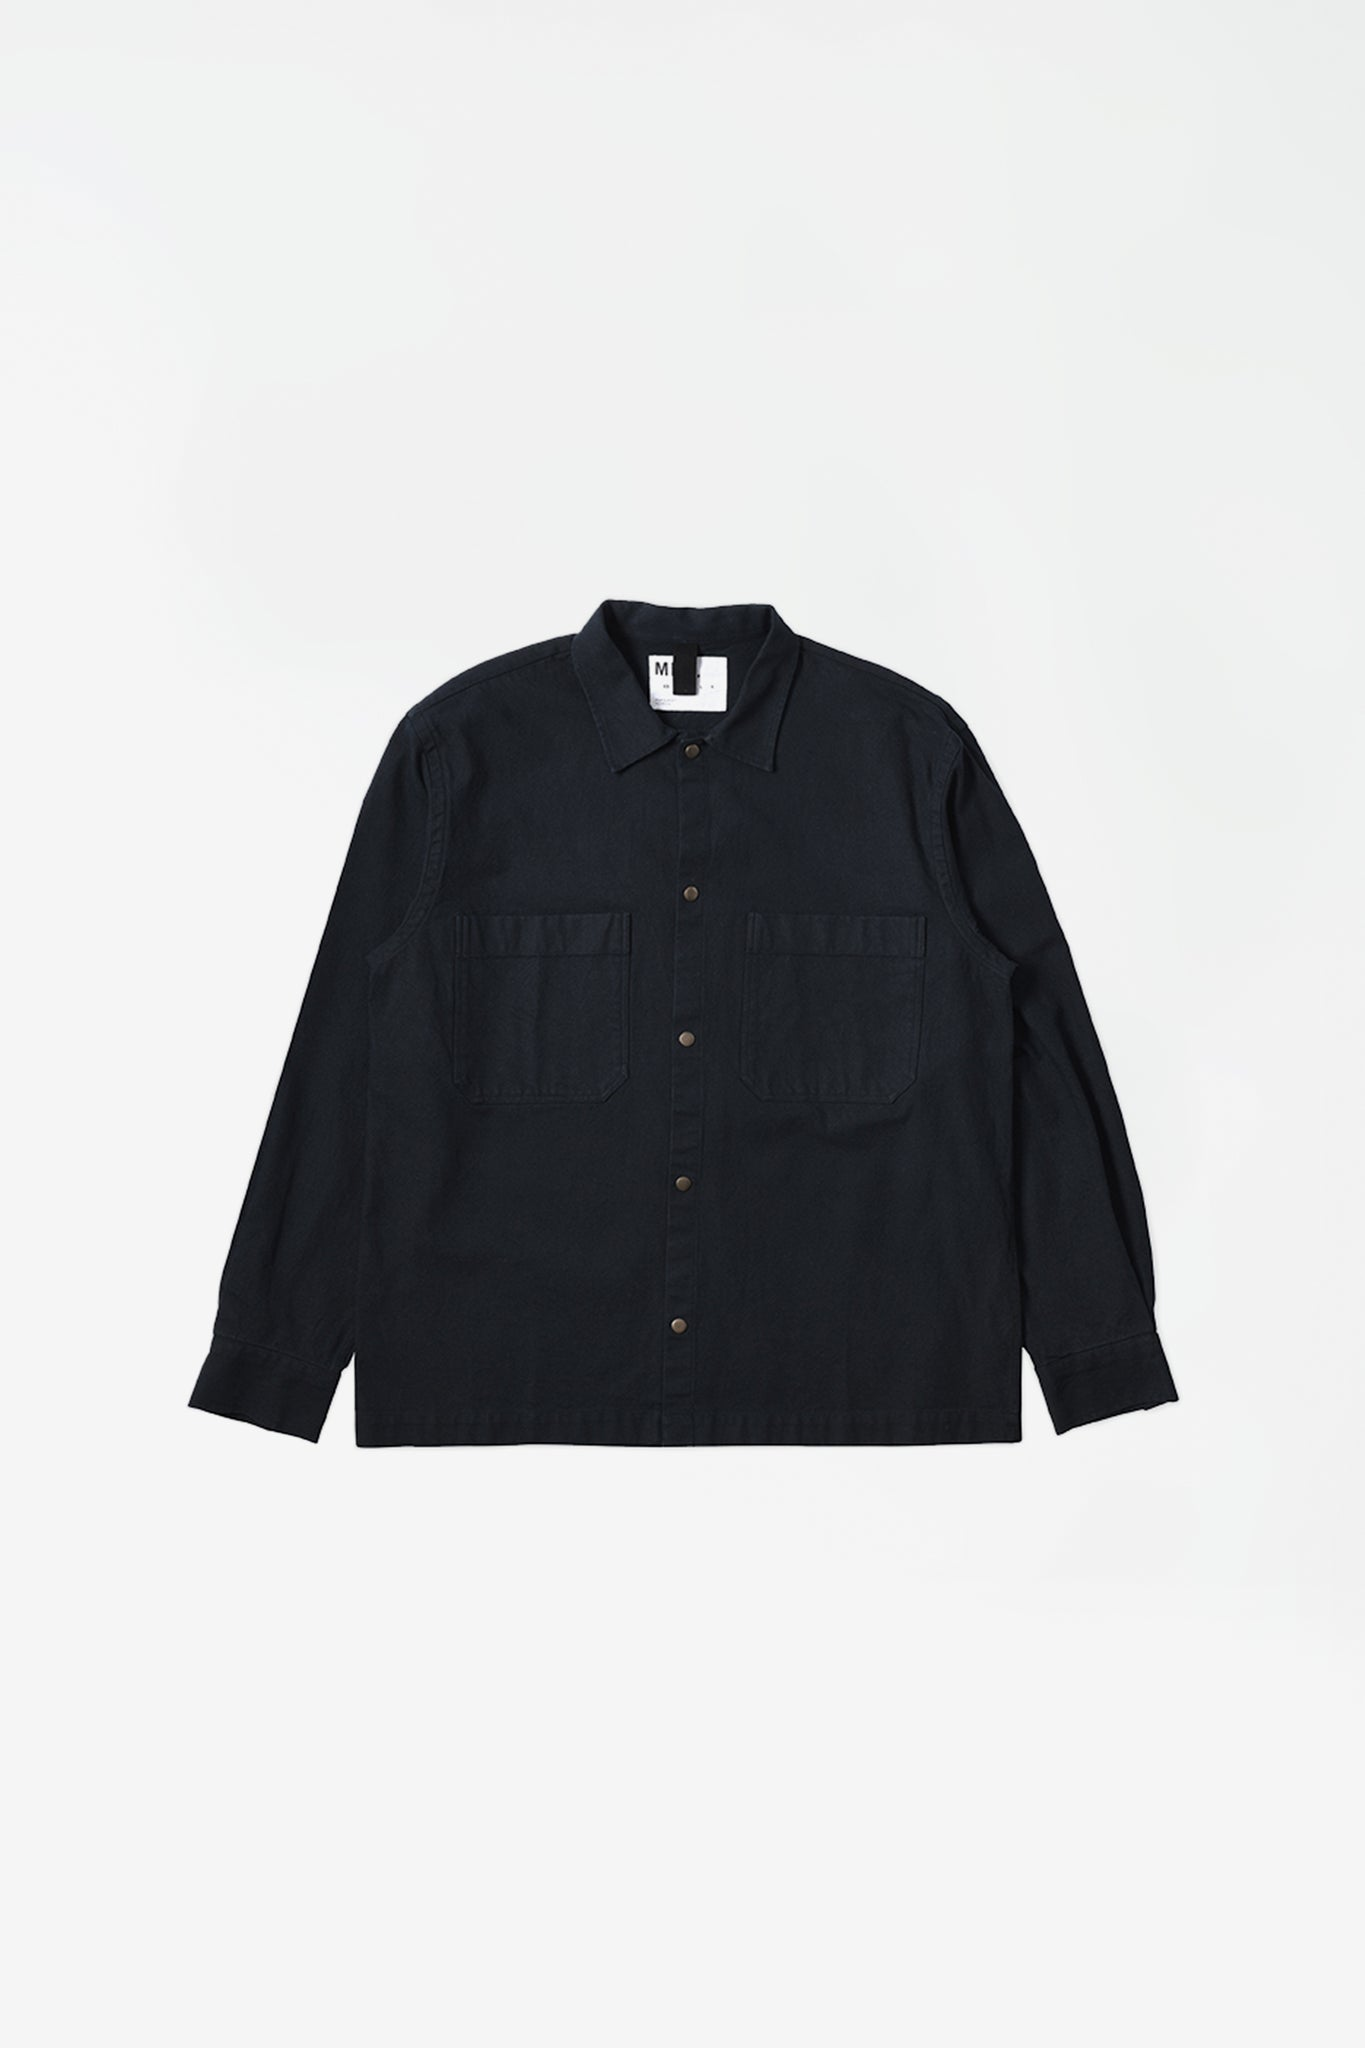 Offset placket shirt workwear cotton twill ink